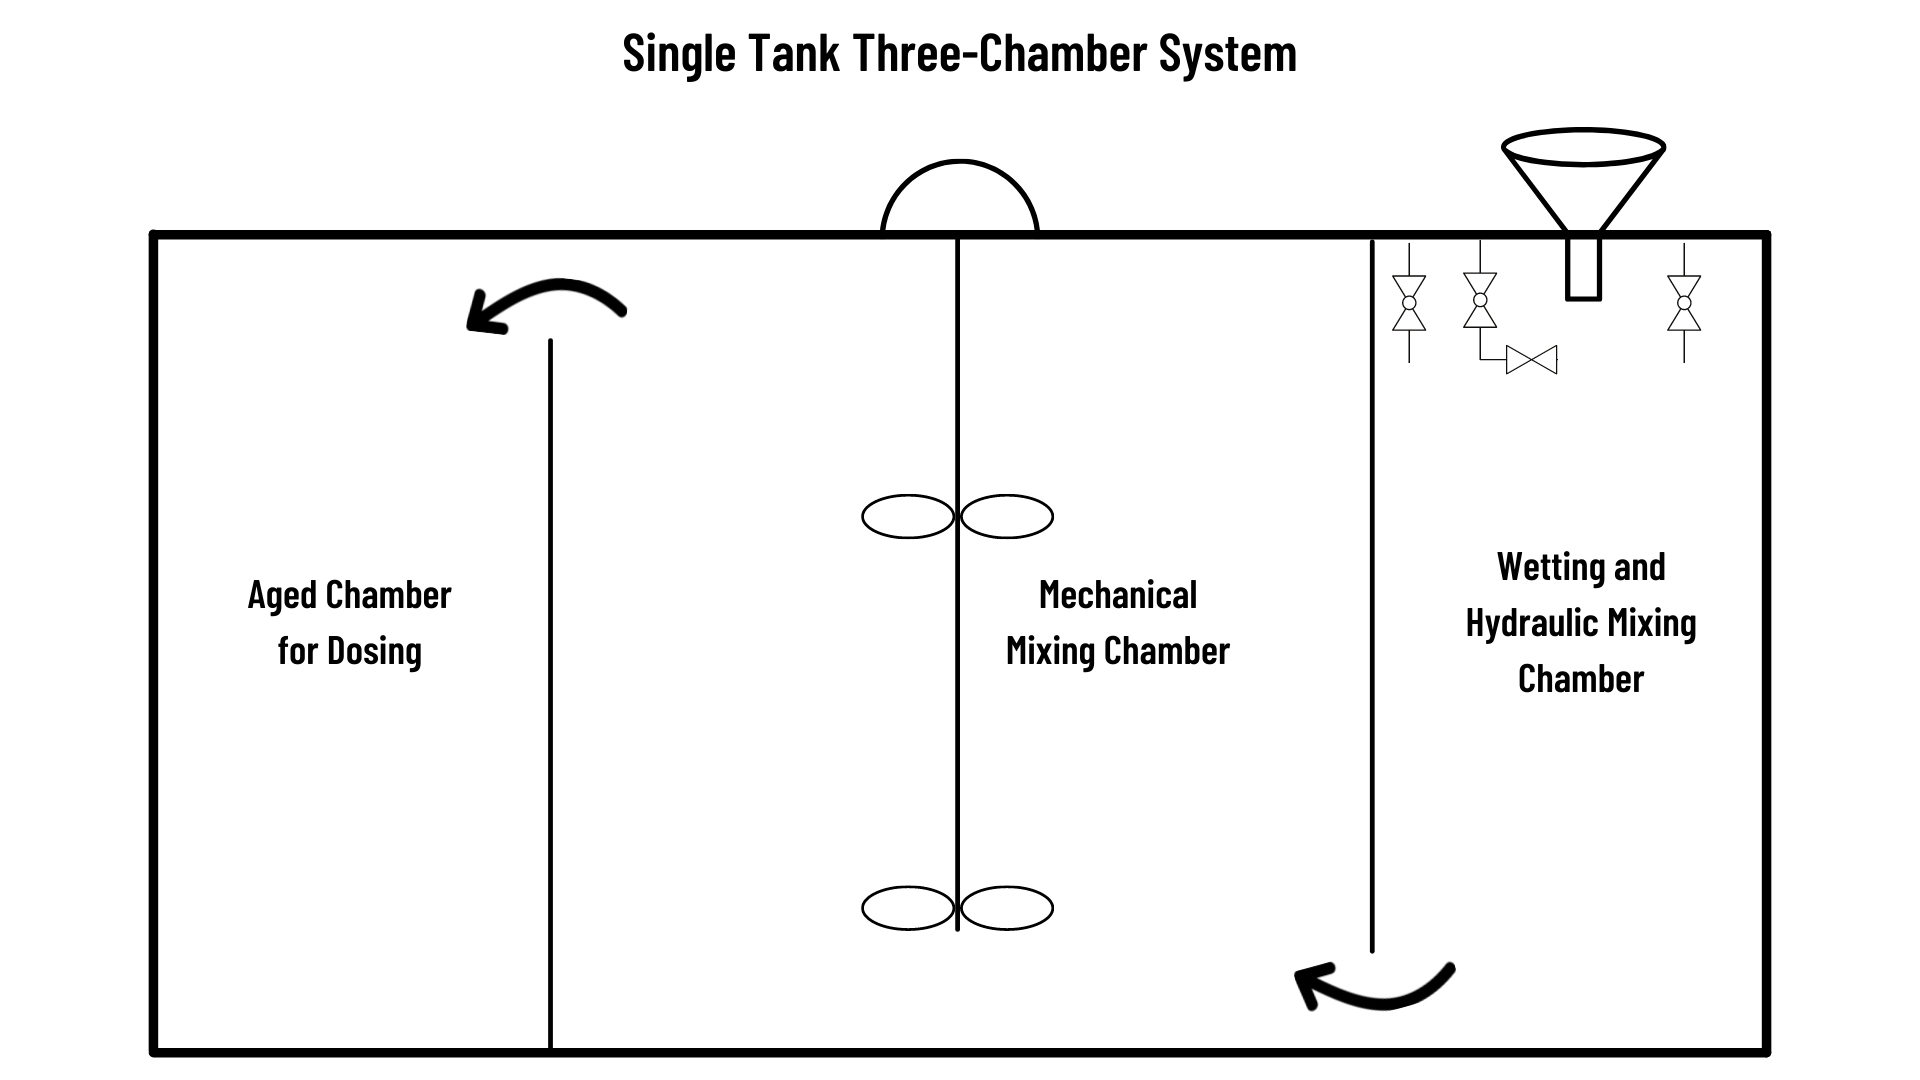 A simple drawing of polymer solution flow path through a single tank dry polymer preparation system.